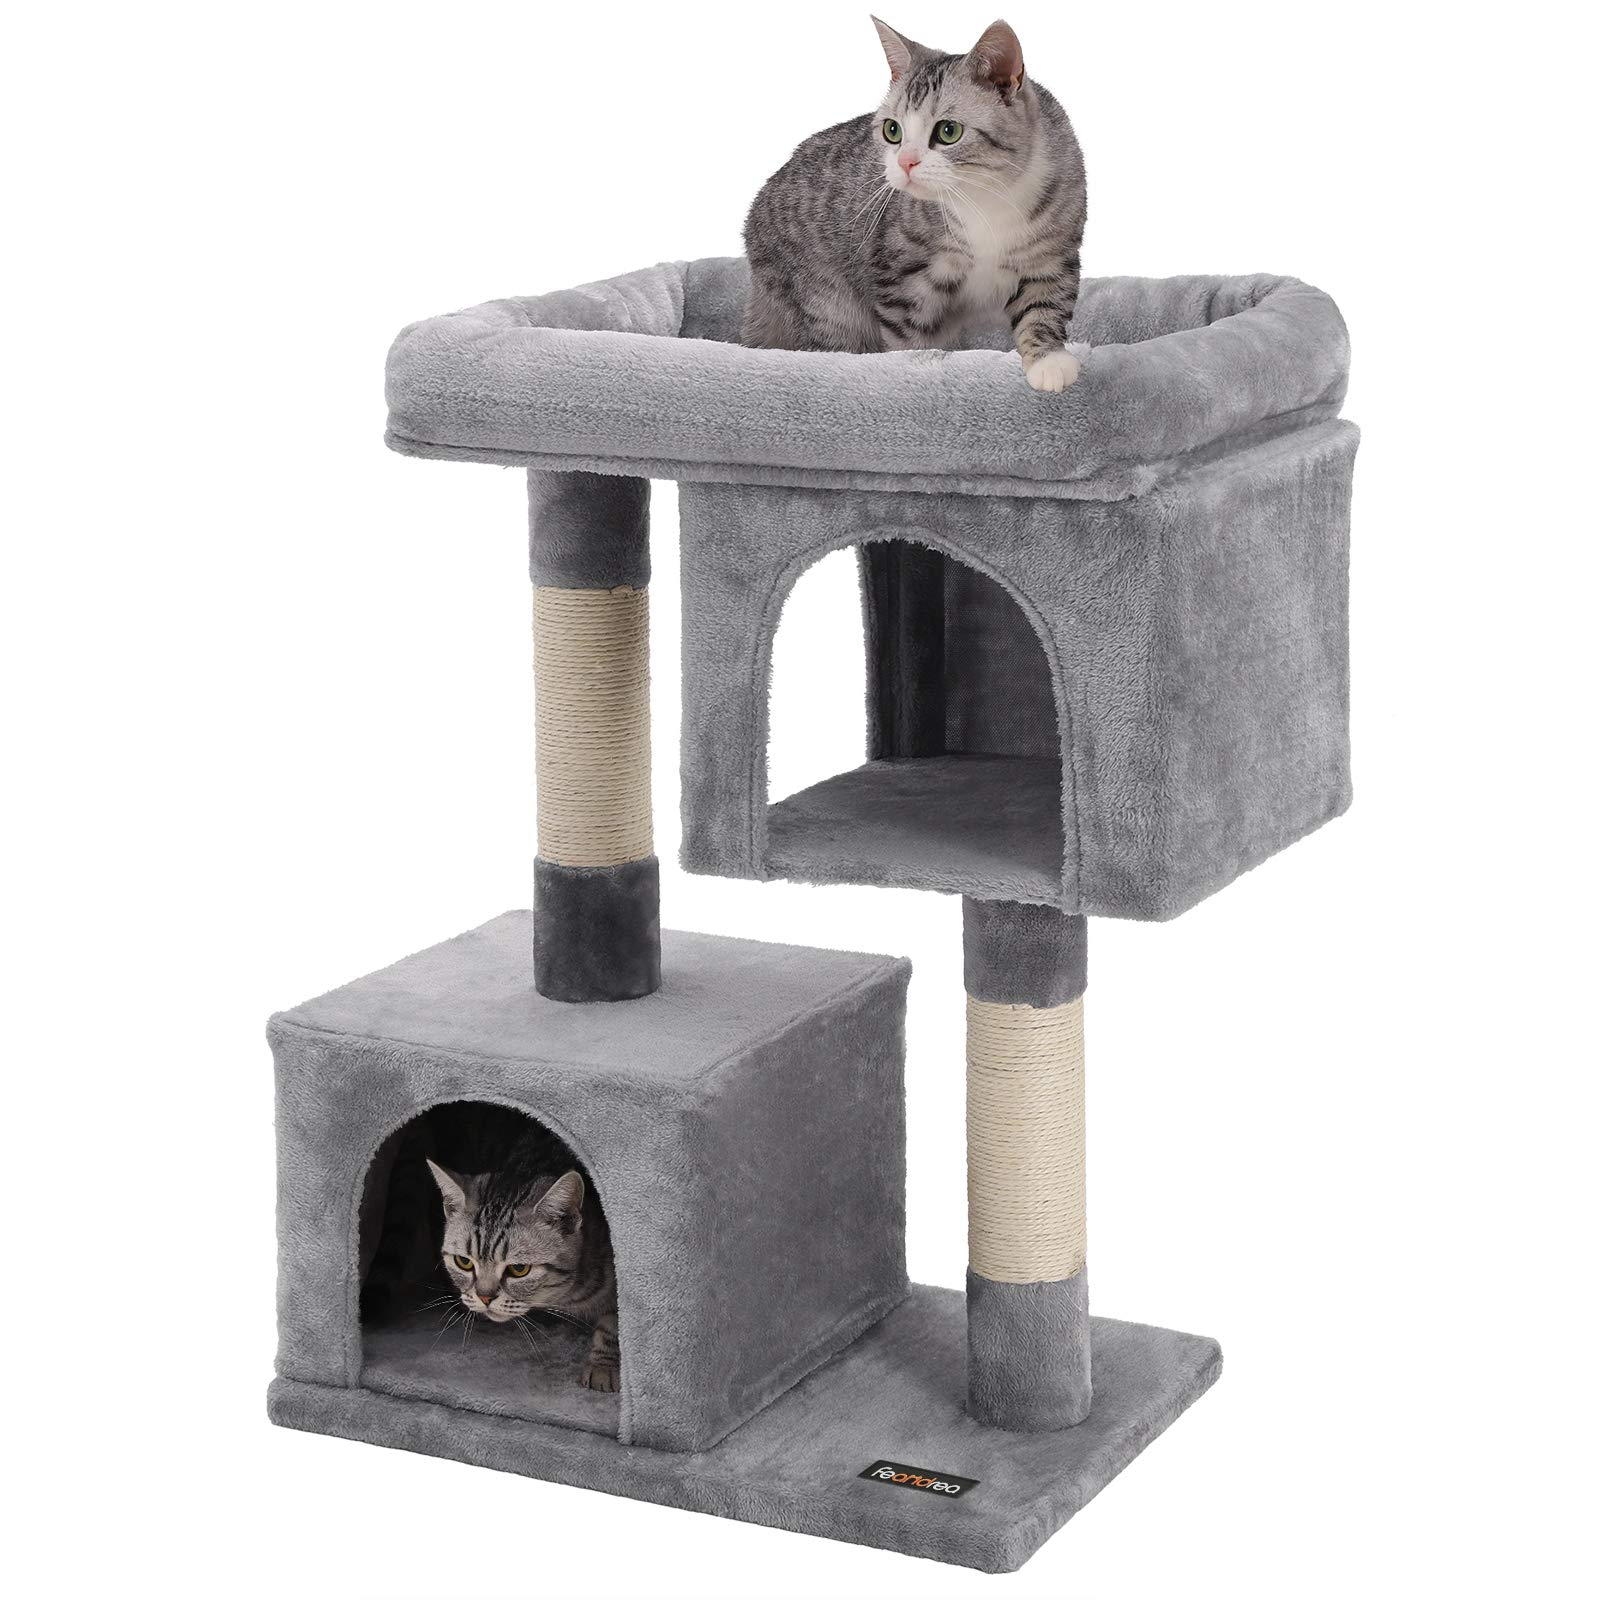 FEANDREA Cat Tree for Large Cats, 2 Cozy Plush Condos and Sisal Posts UPCT61W by FEANDREA